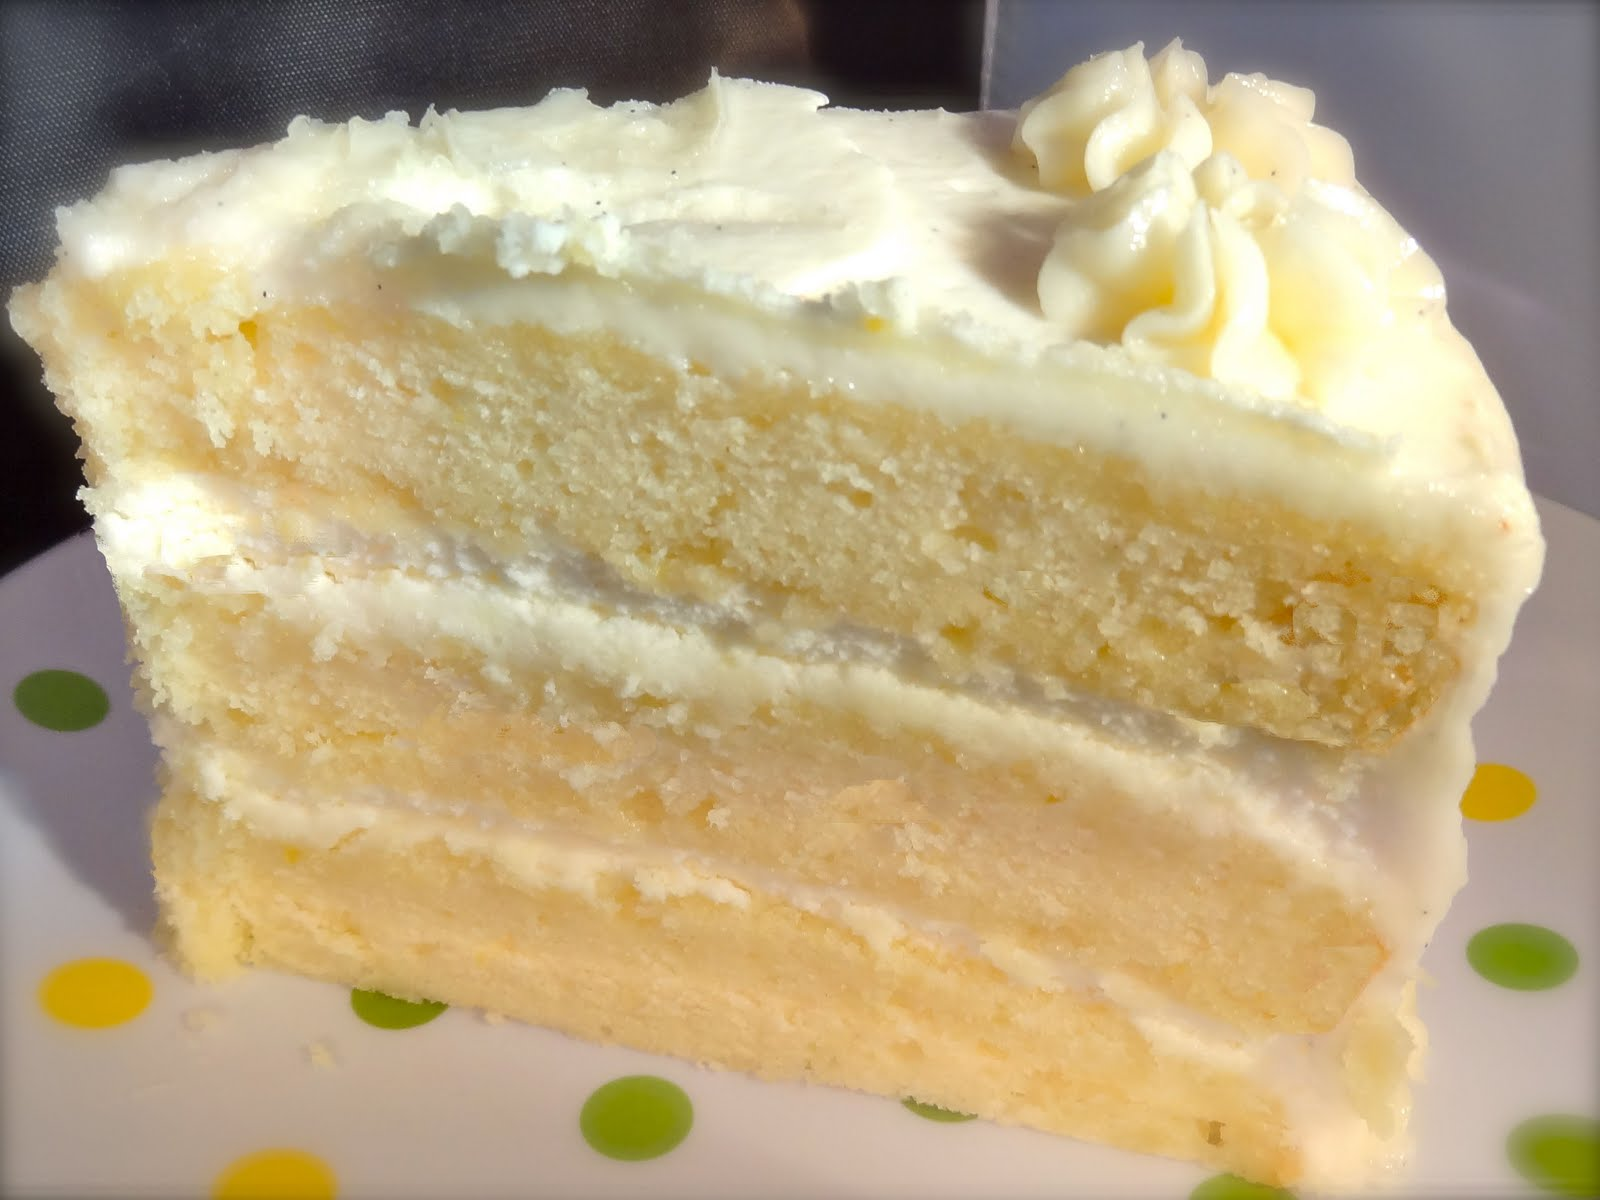 Star's Flour Power: Lemon layer cake with lemon mousse filling ...